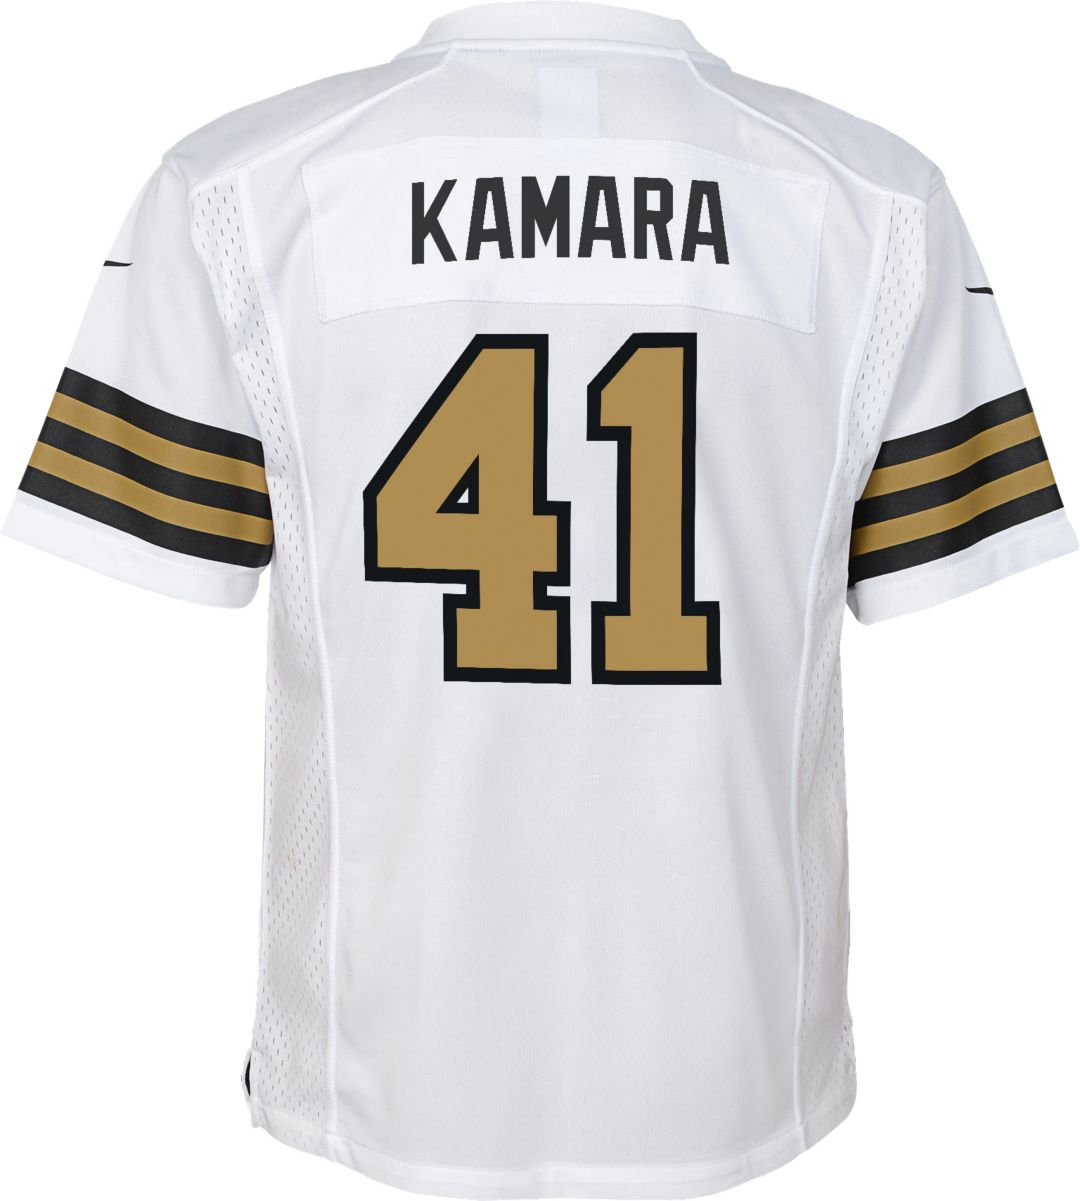 size 40 d970b d02b8 Nike Boys' Color Rush Game Jersey New Orleans Saints Alvin Kamara #41